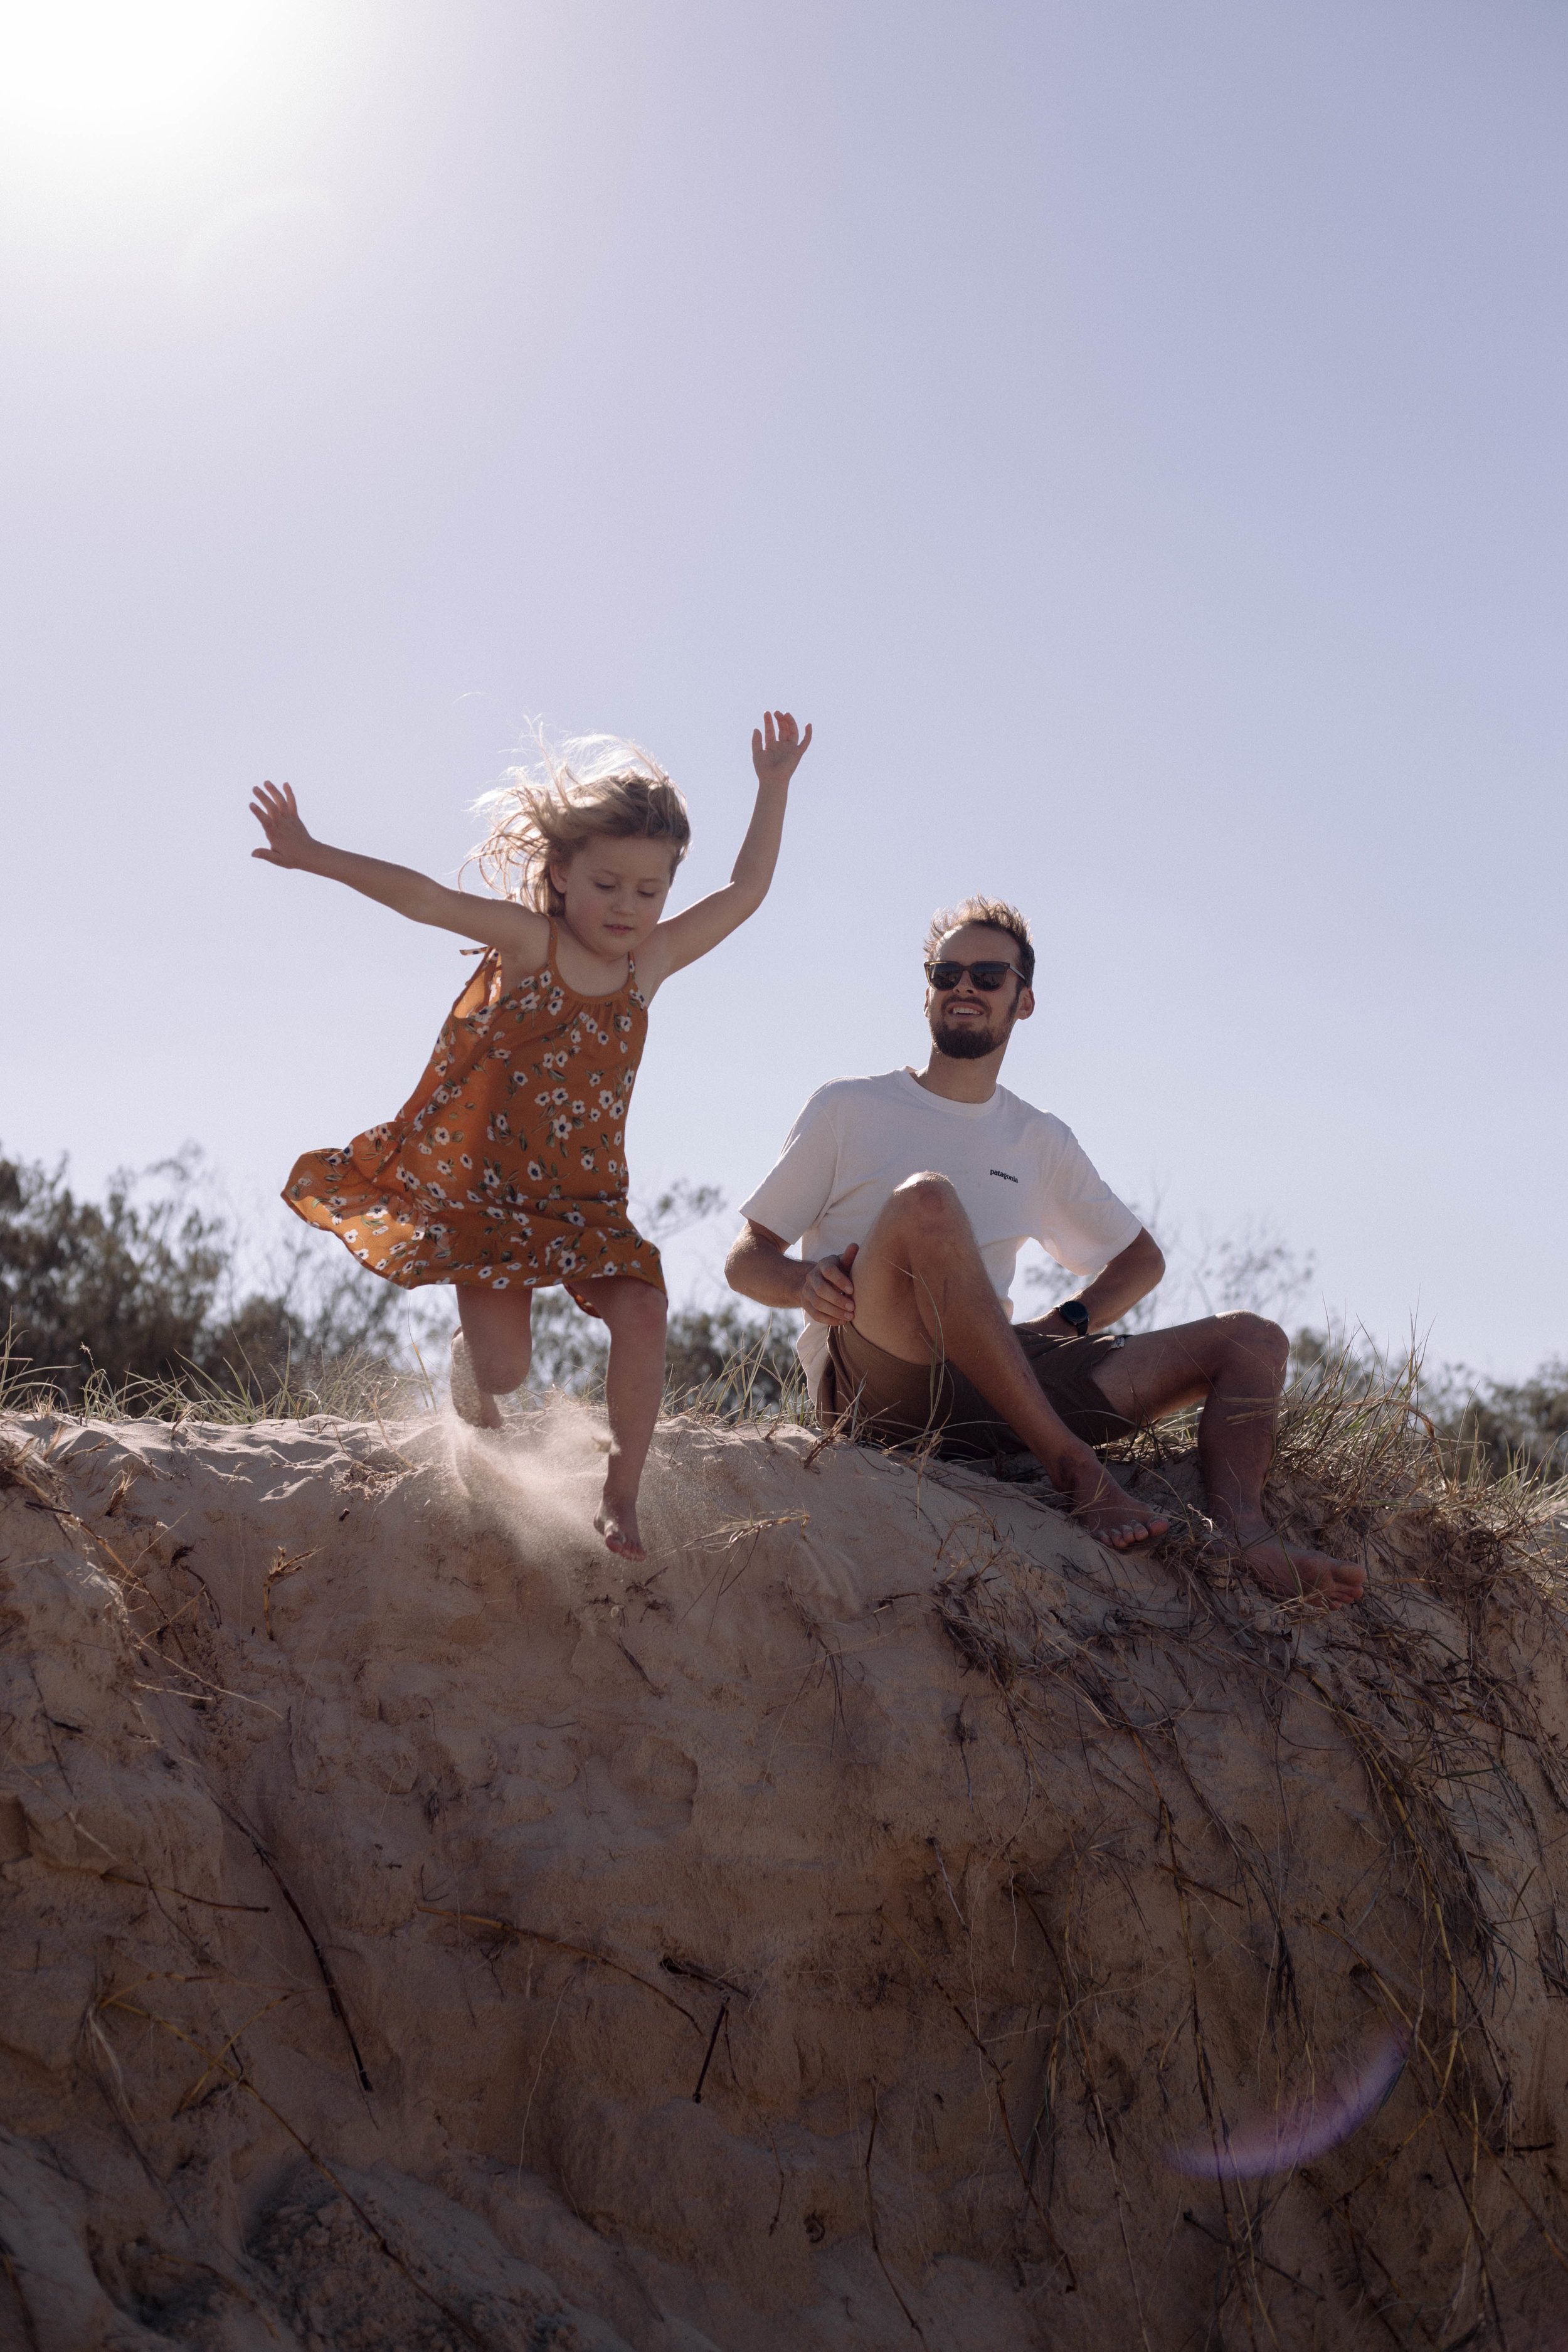 fathers day, little girl jumping, father daughter